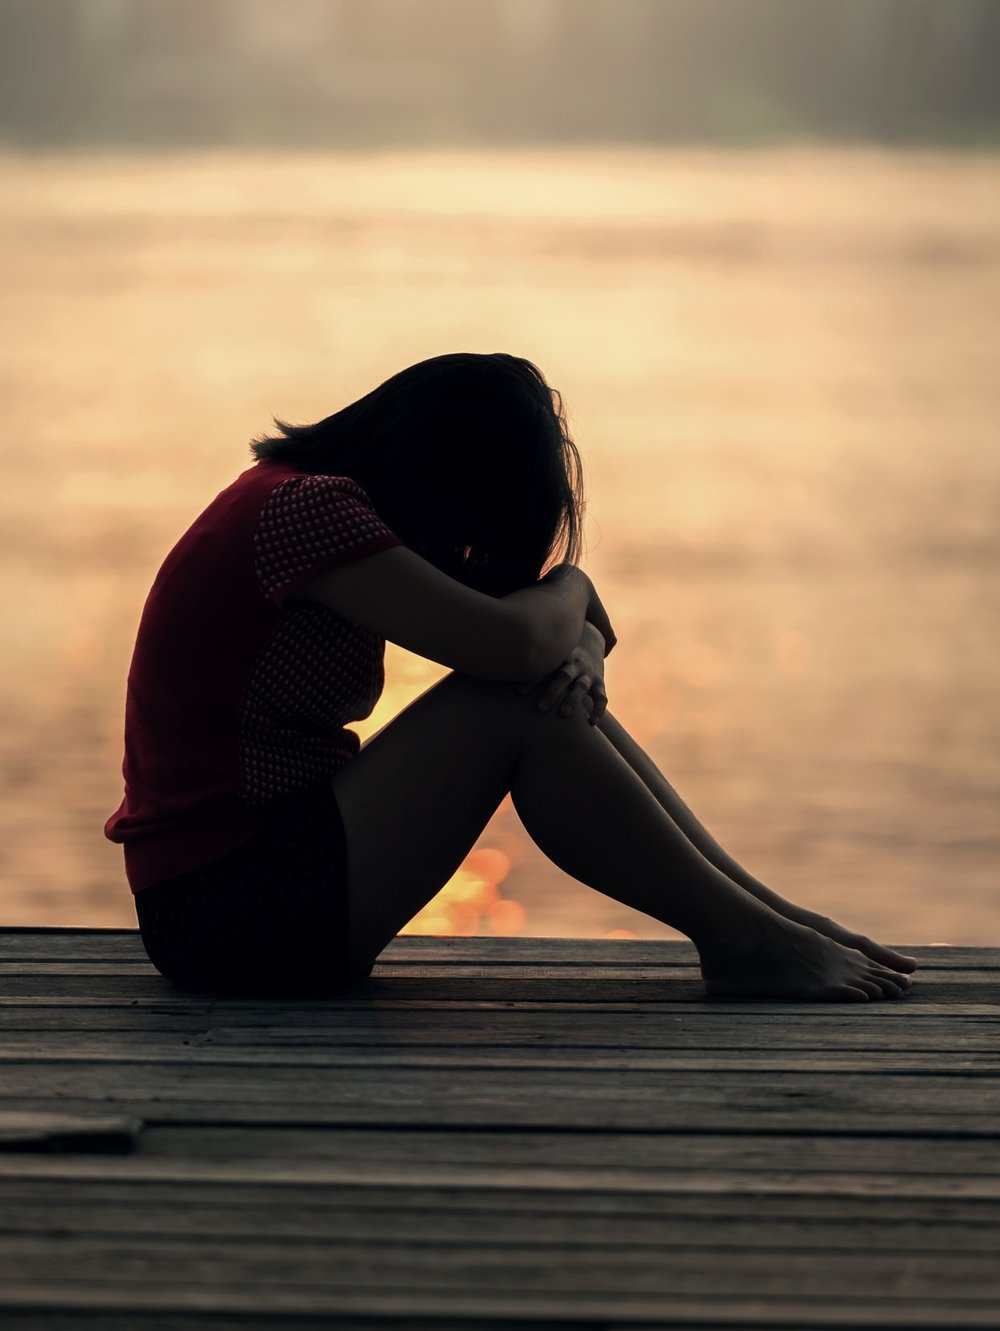 1 in 4 girls today fall into a clinical diagnosis- - This includes depression, eating disorders, cutting, and more. Click below to learn more about this issue.